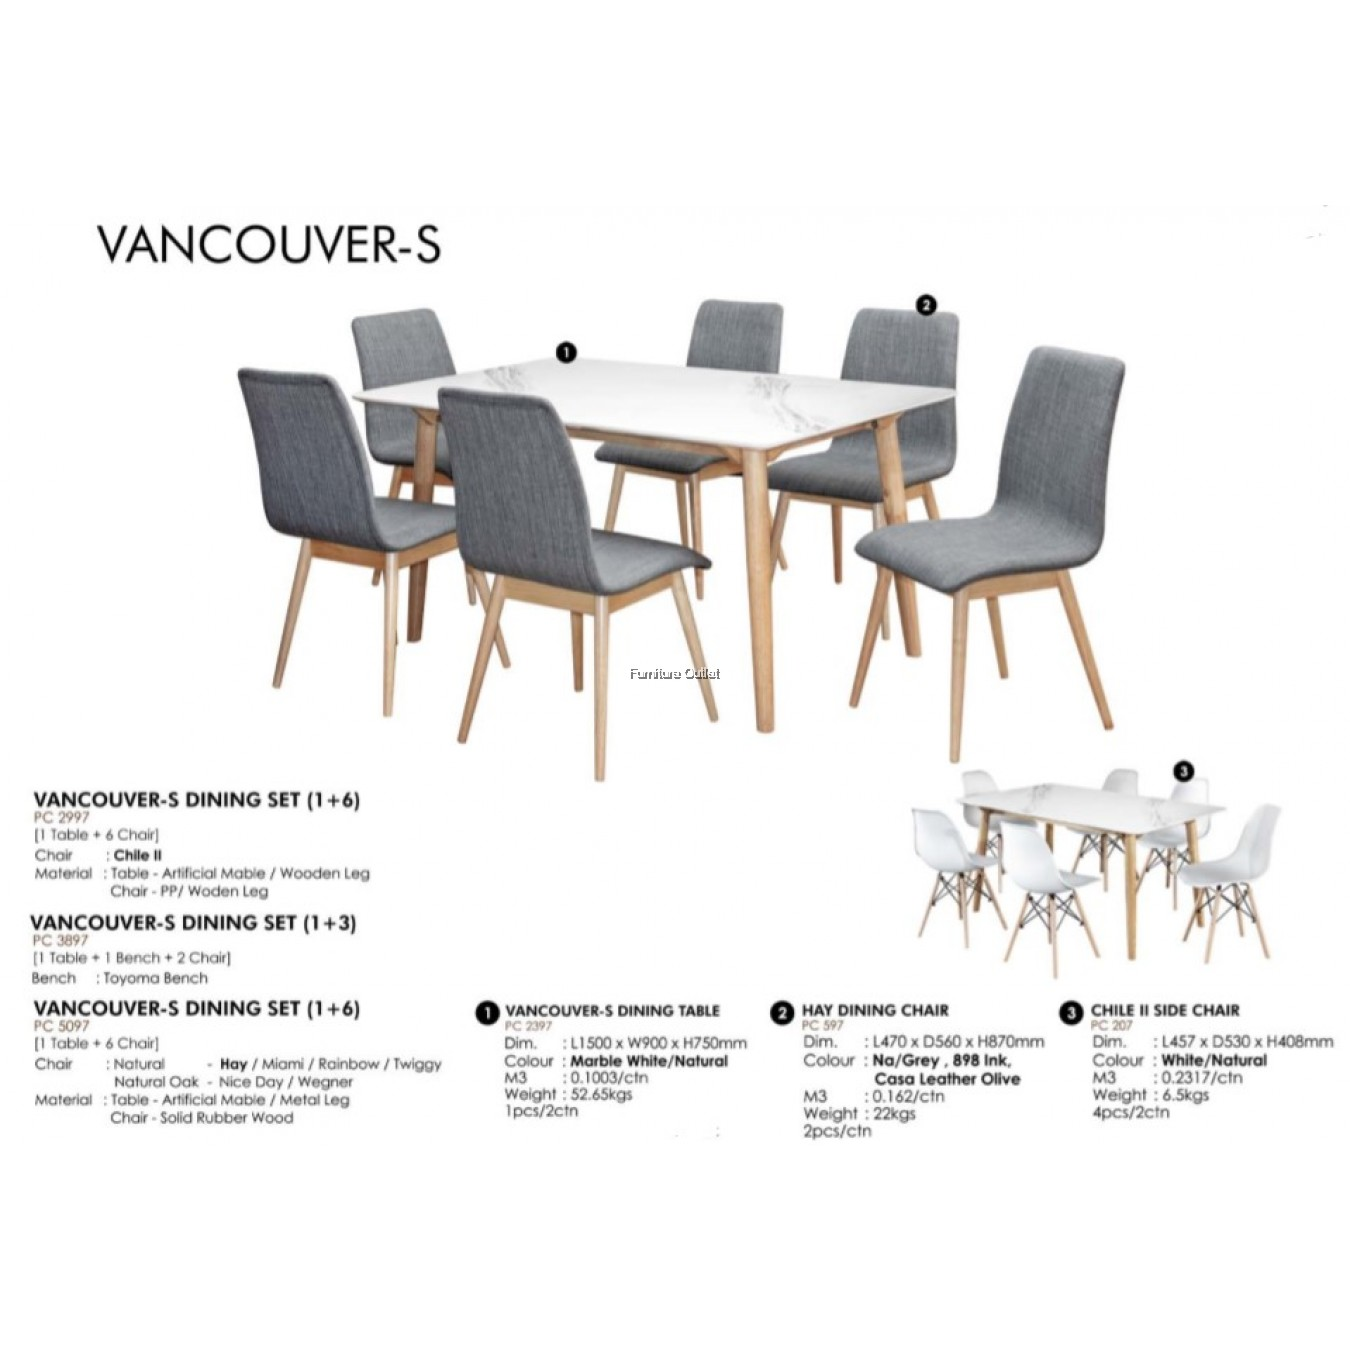 VANCOUVER-S DINING SET (1+1+2) / (1+6)